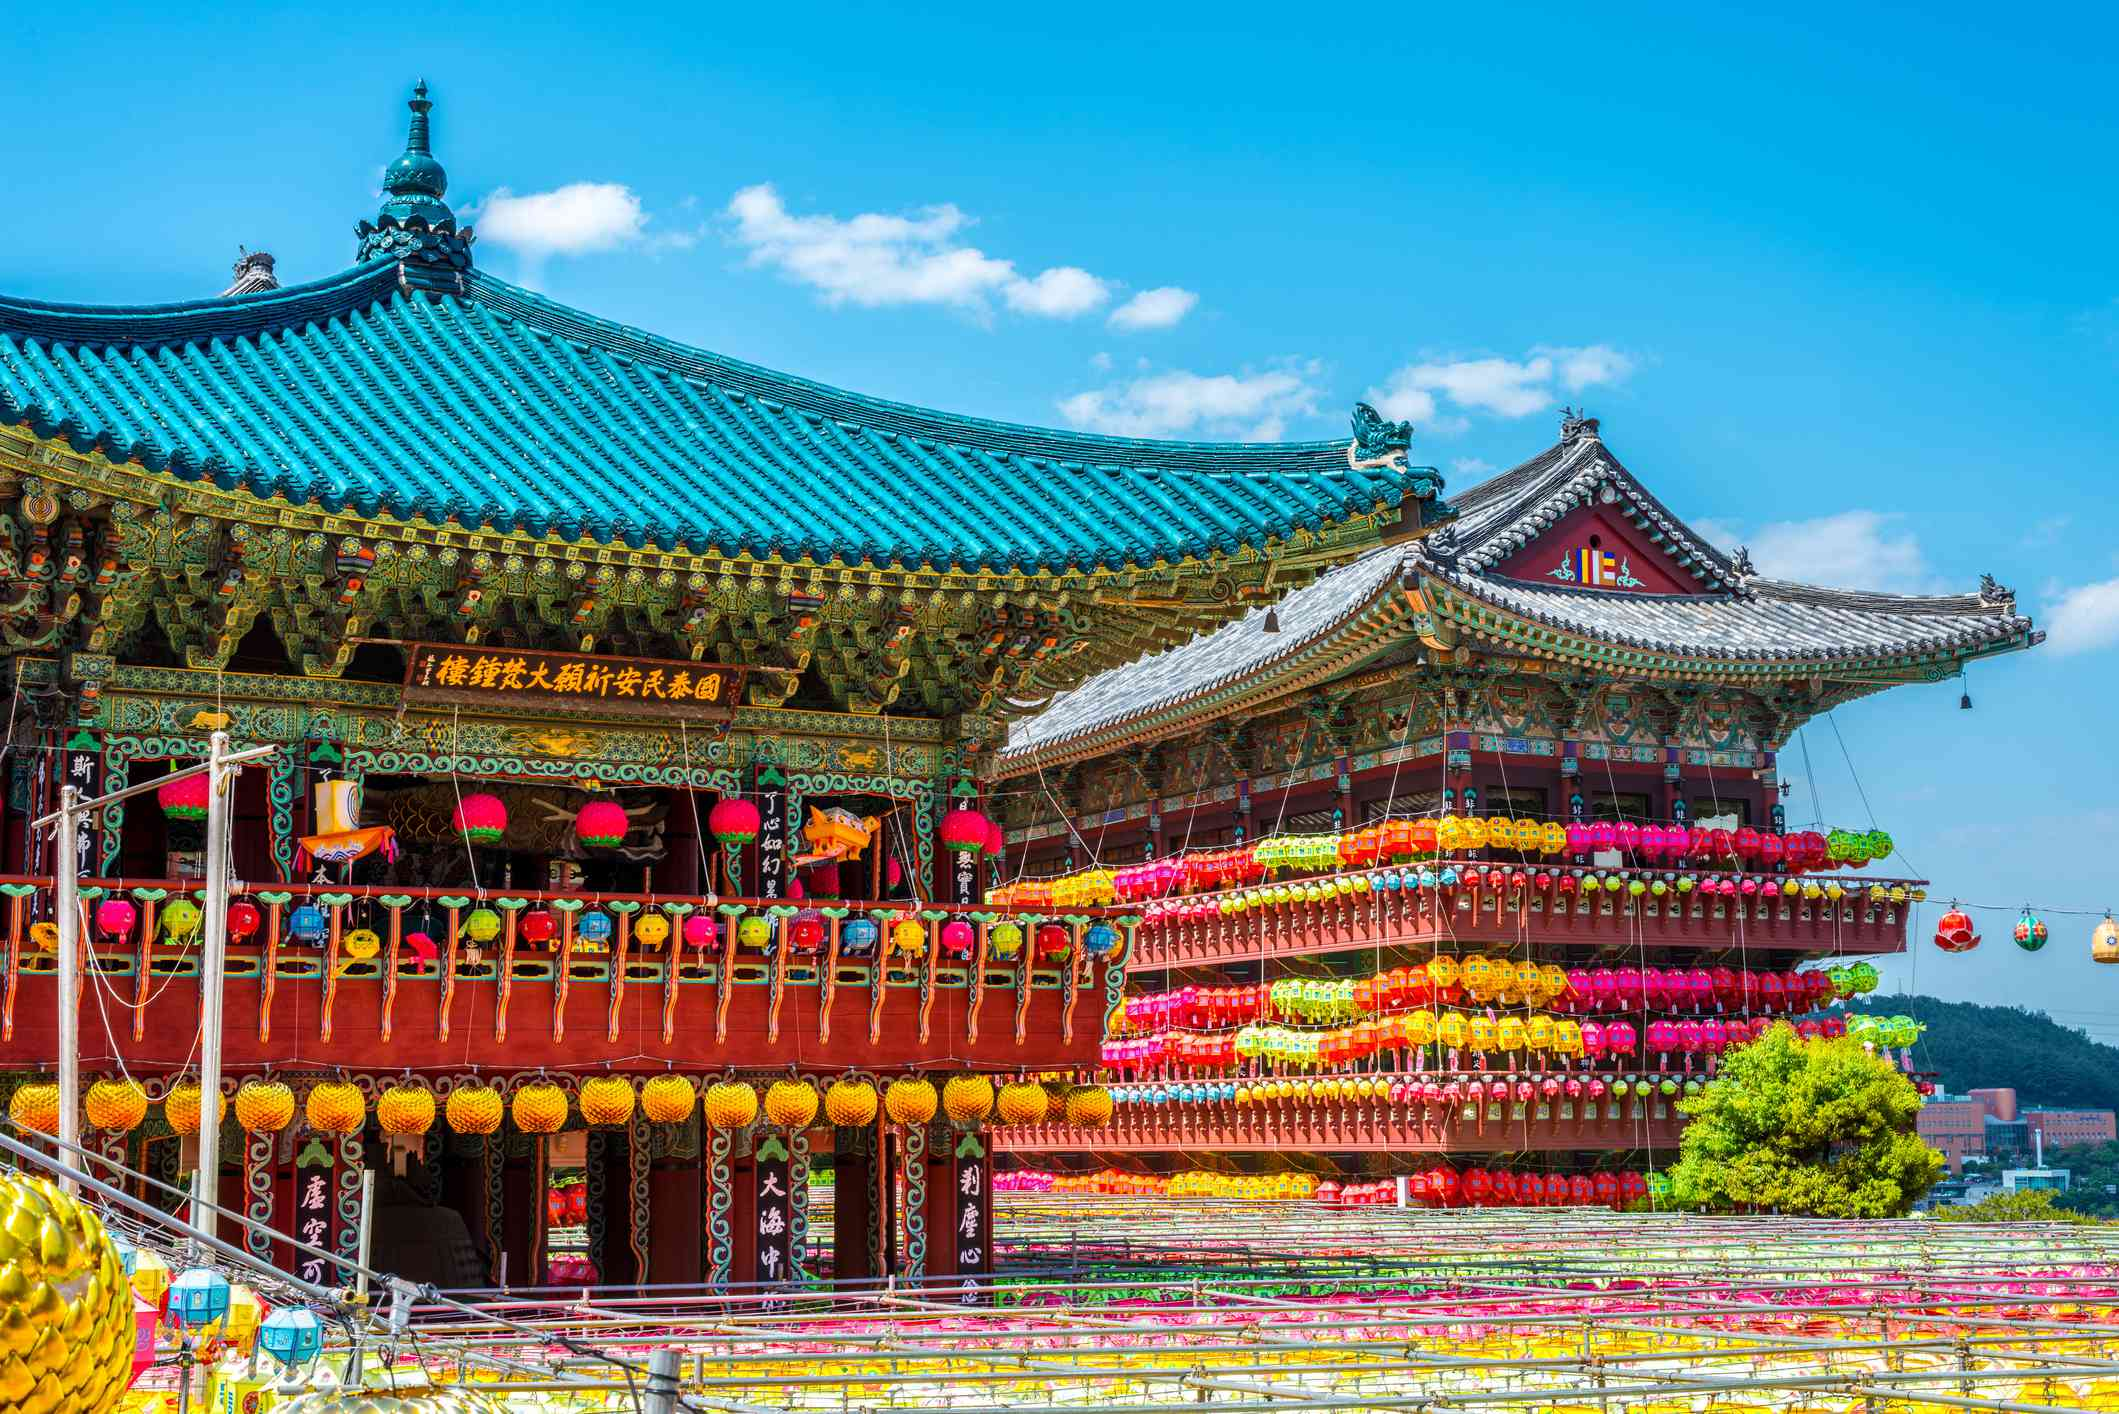 Two buildings in the Busan Samgwangsa Temple complex decorated with hundreds of colorful lanterns